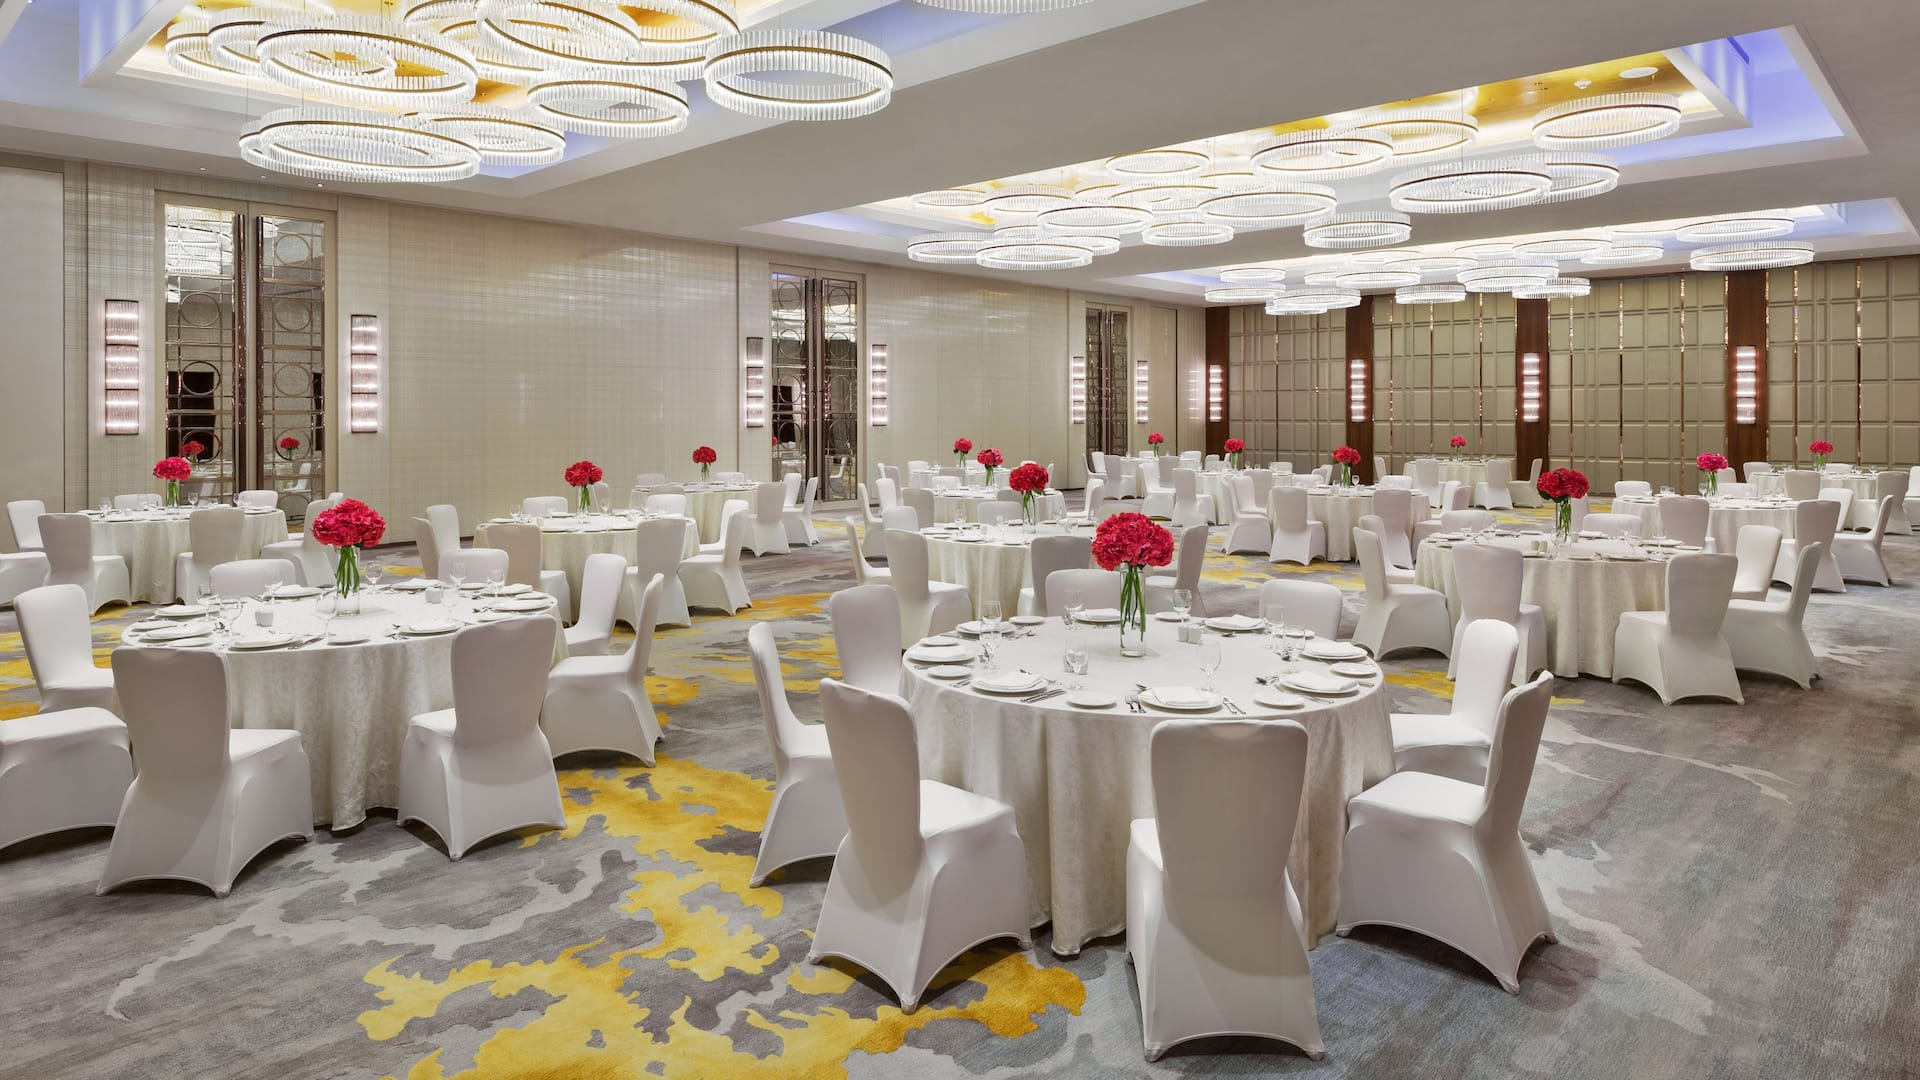 Wedding tables with place settings in hotel ballroom